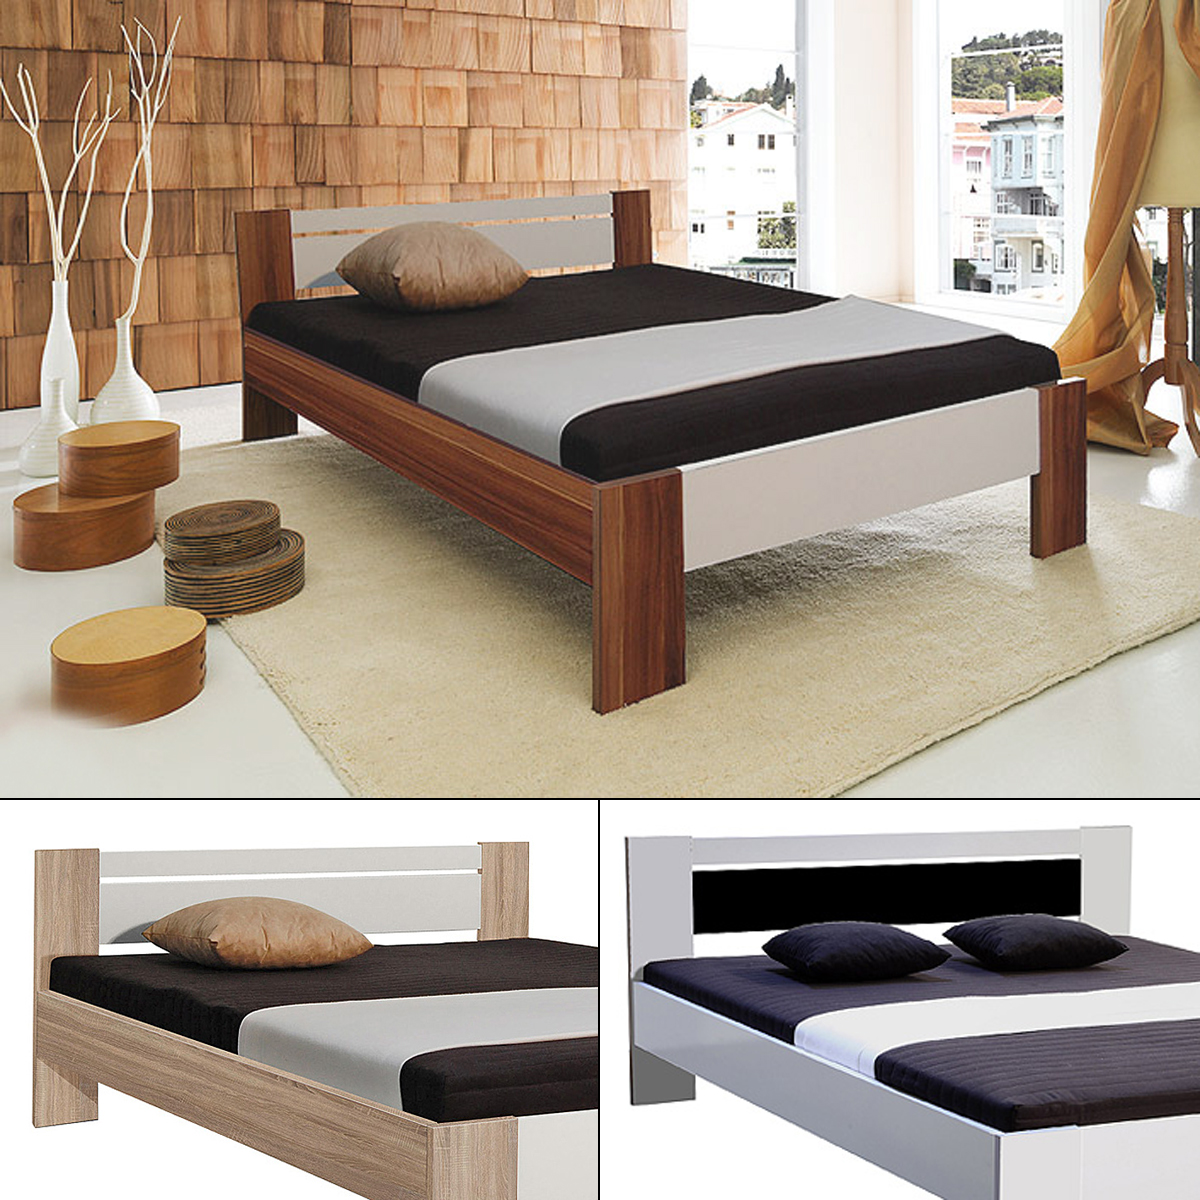 bett vega futonbett mit rollrost und matratze 140x200 cm. Black Bedroom Furniture Sets. Home Design Ideas